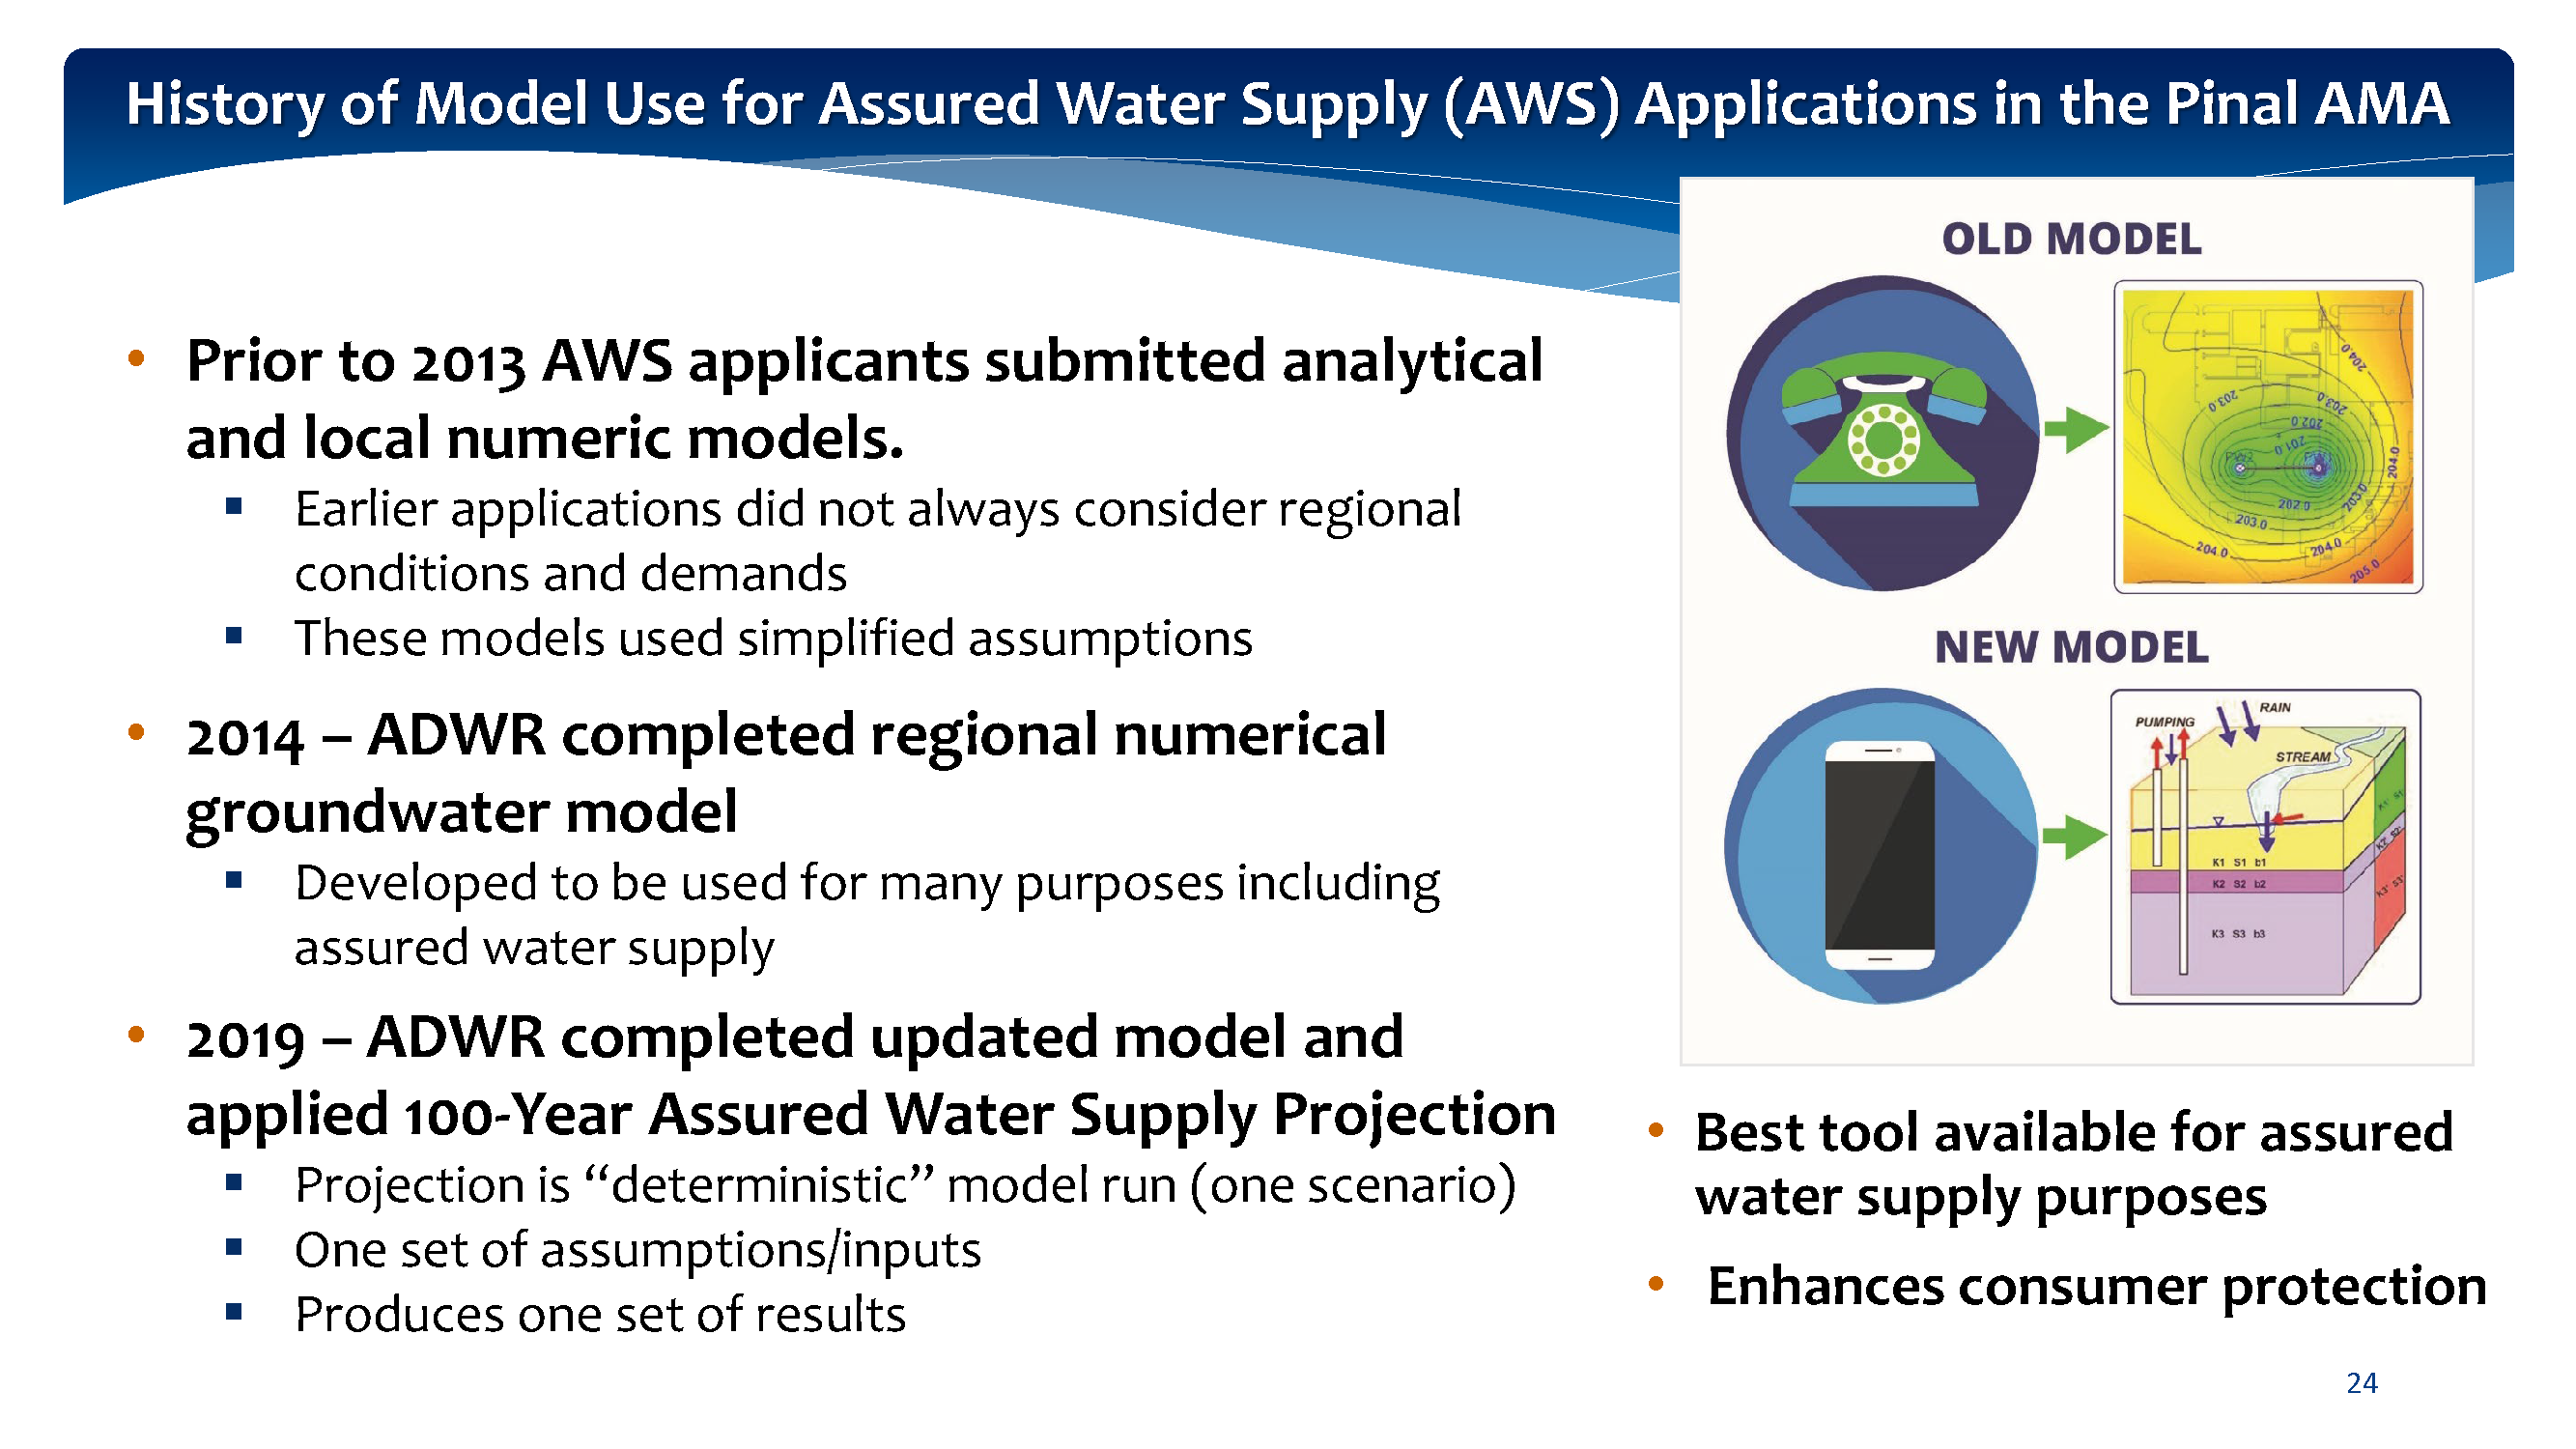 History of Model Use for Assured Water Supply (AWS) Applications in the Pinal AMA